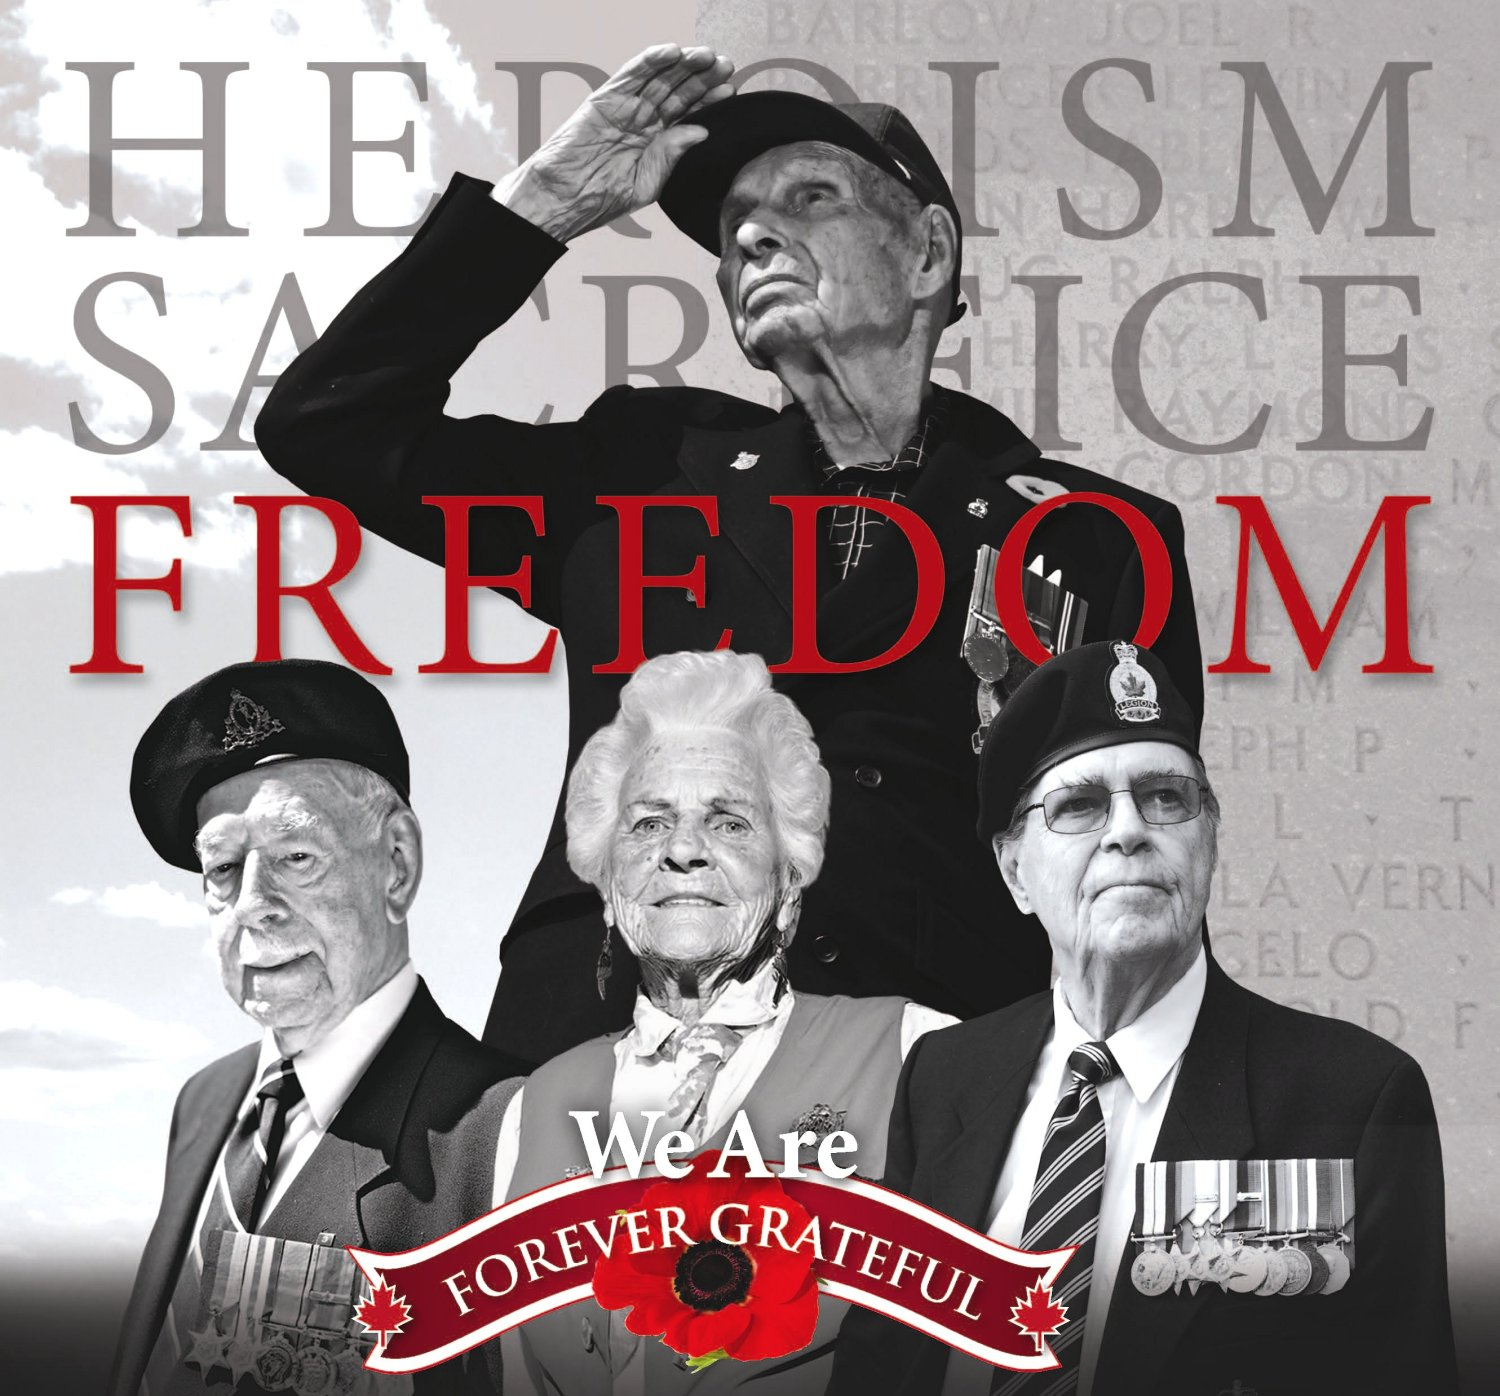 Heroism, Sacrifice, Freedom - We Are Forever Grateful image from Chartwell Remembrance Day Flyer 12Oct11